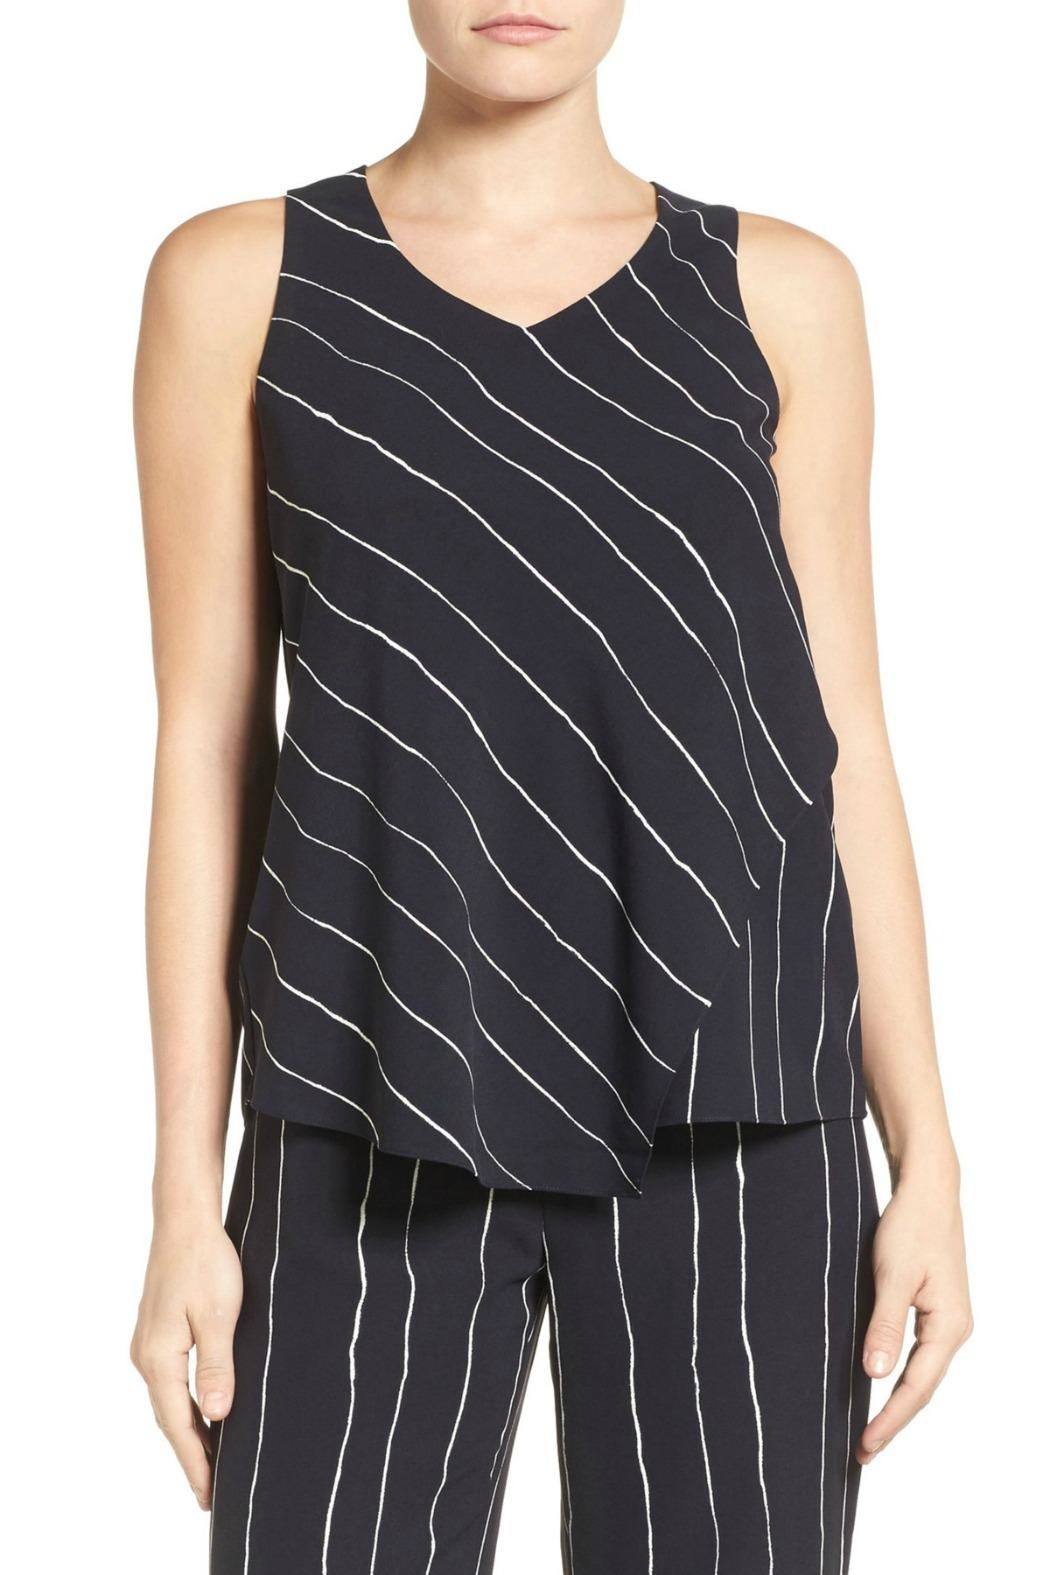 Nic + Zoe Modern Lines Tank - Front Cropped Image